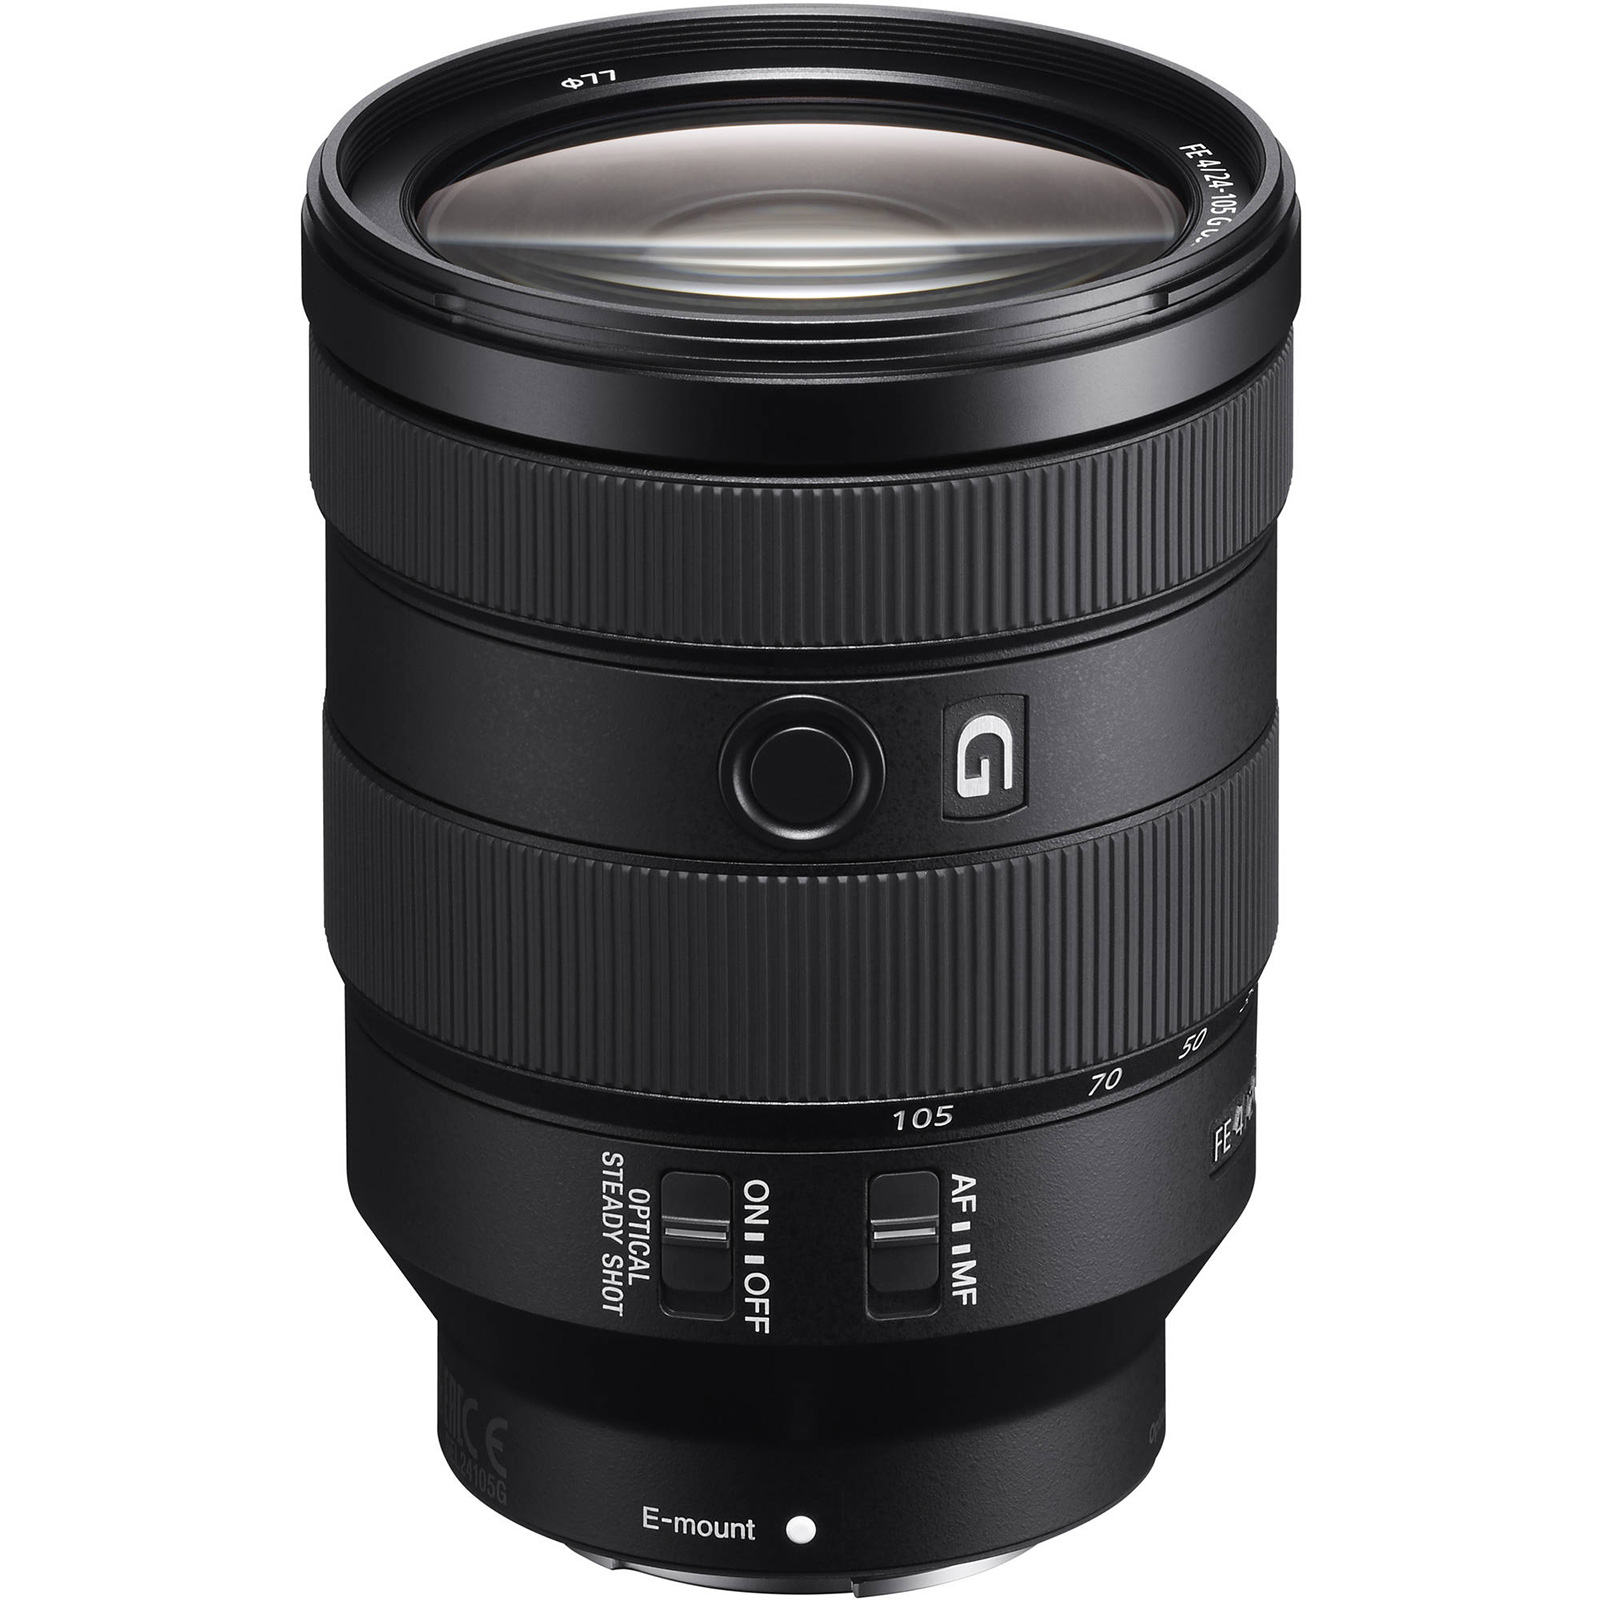 Sony FE 24-105mm F4 G OSS E-Mount Full-Frame Zoom Lens (SEL24105G)